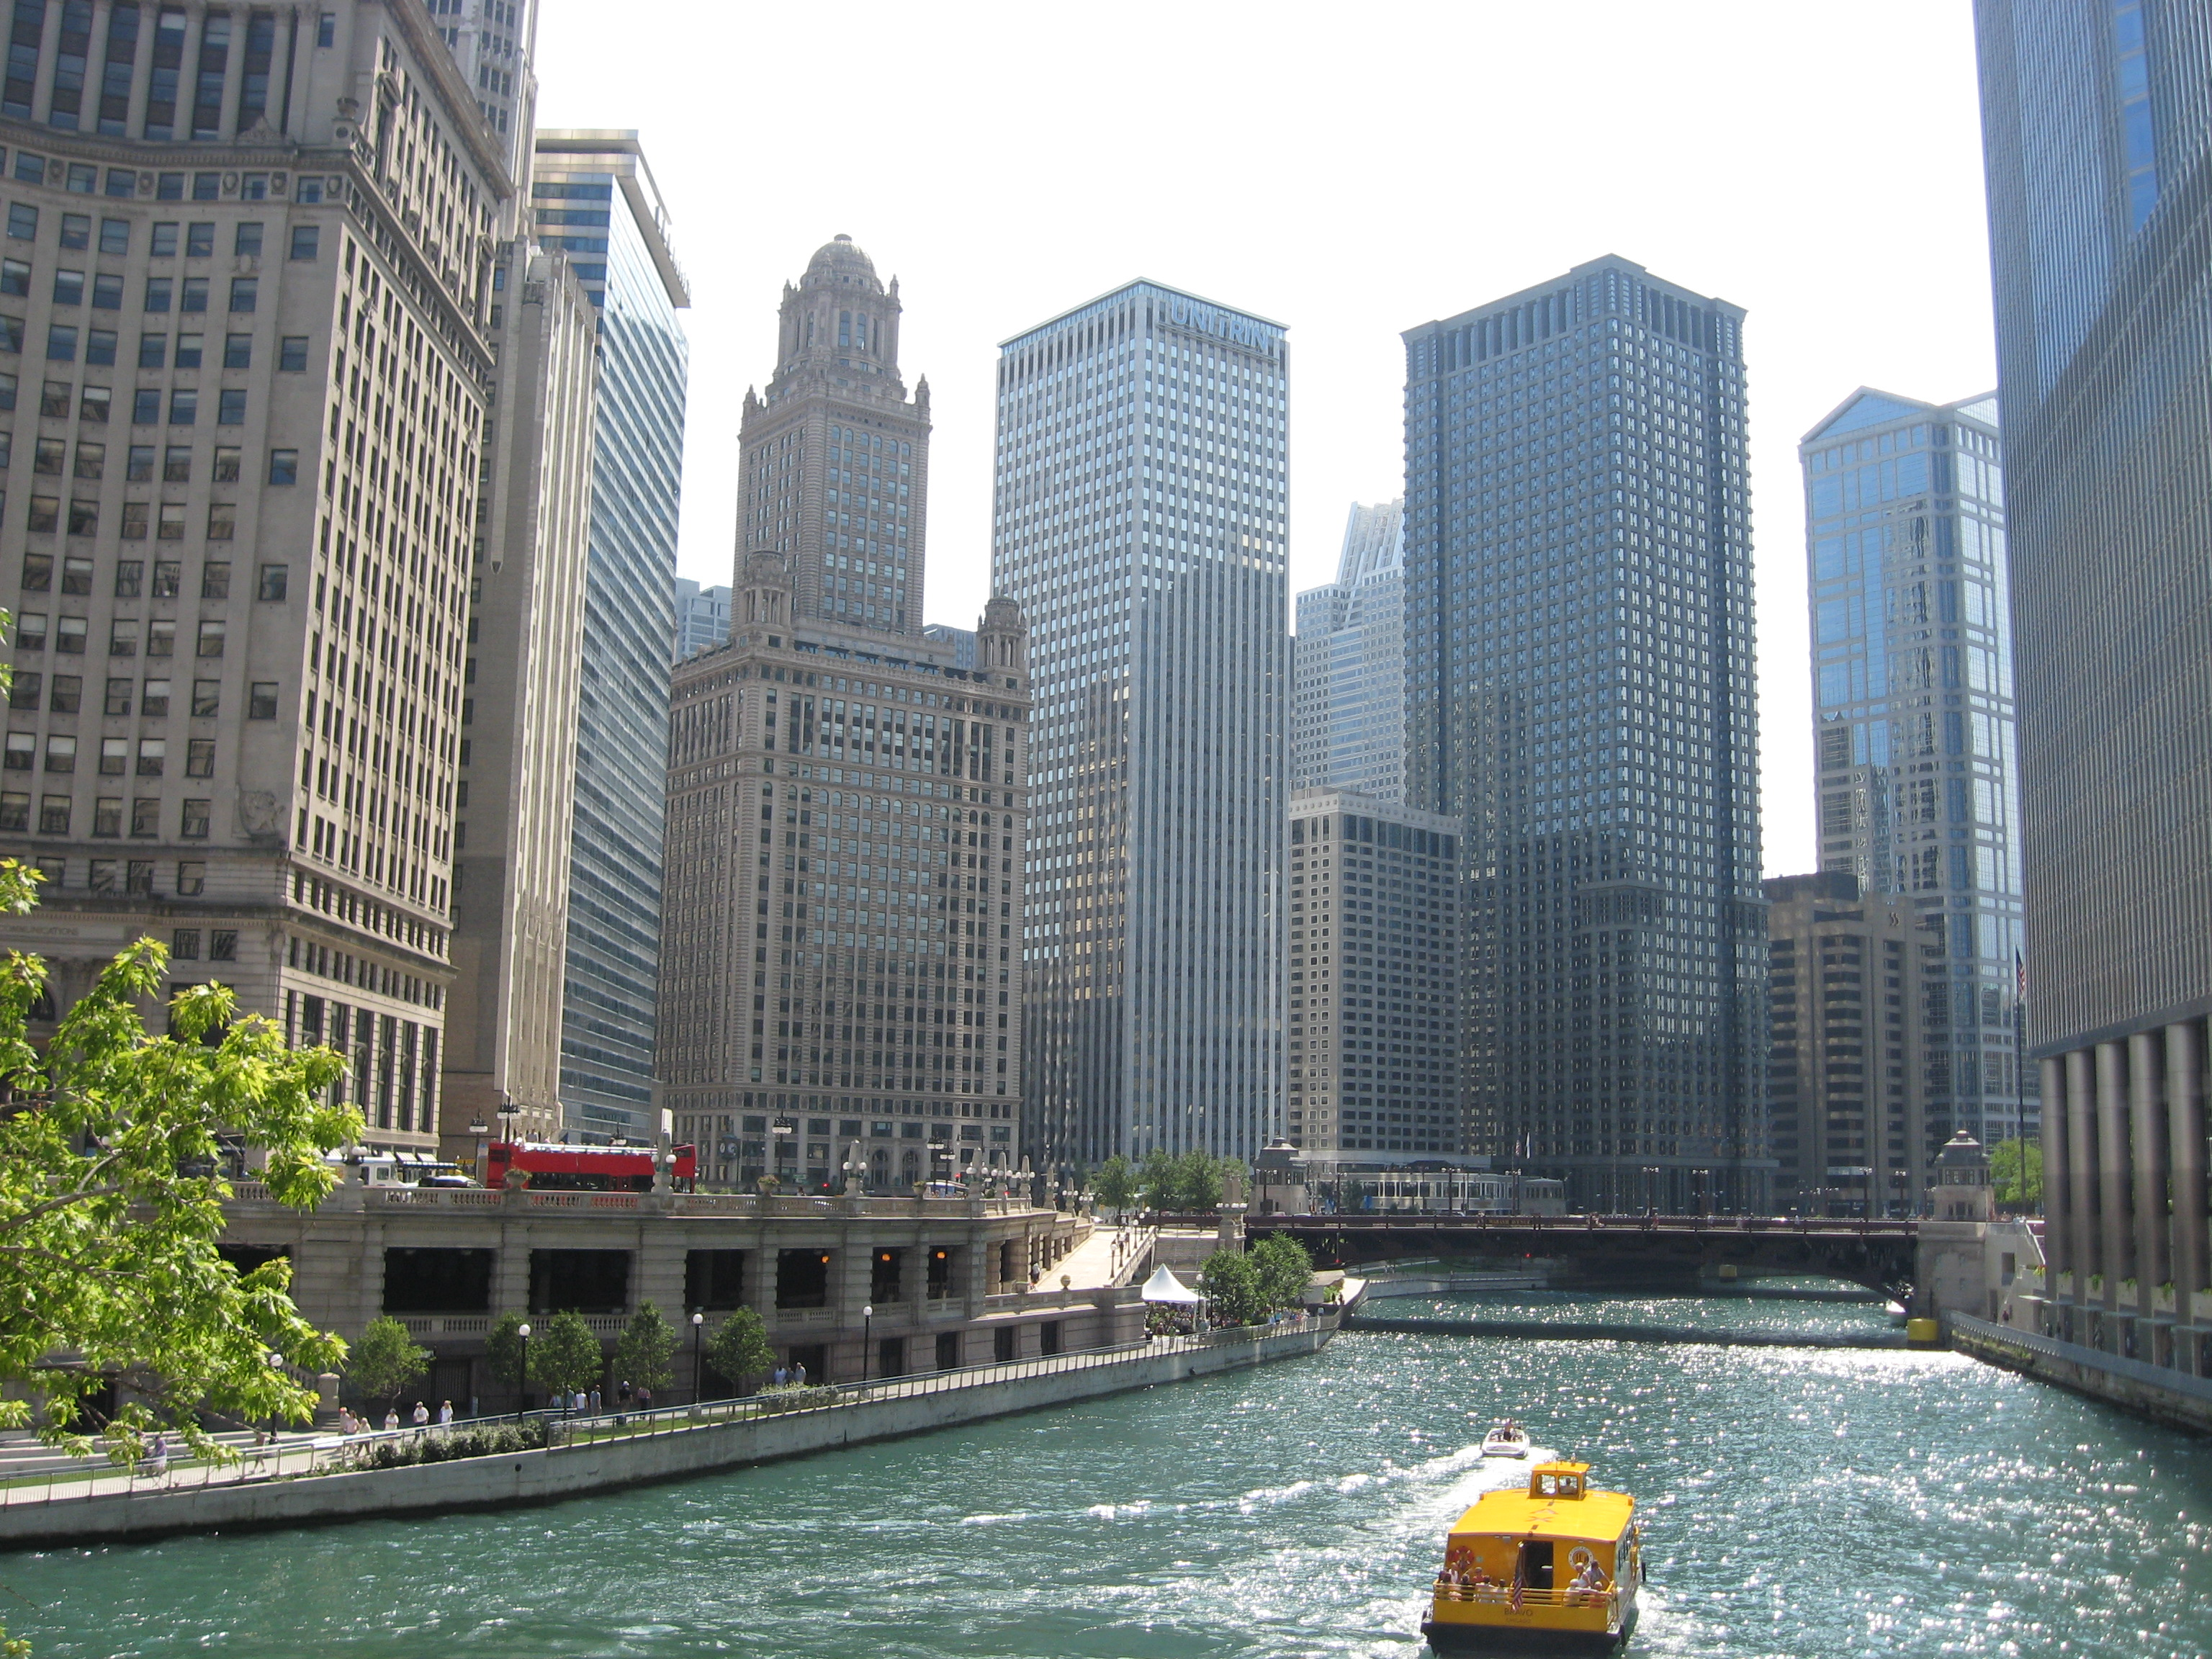 JSED_USA_Chicago_Chicago River_Architecture